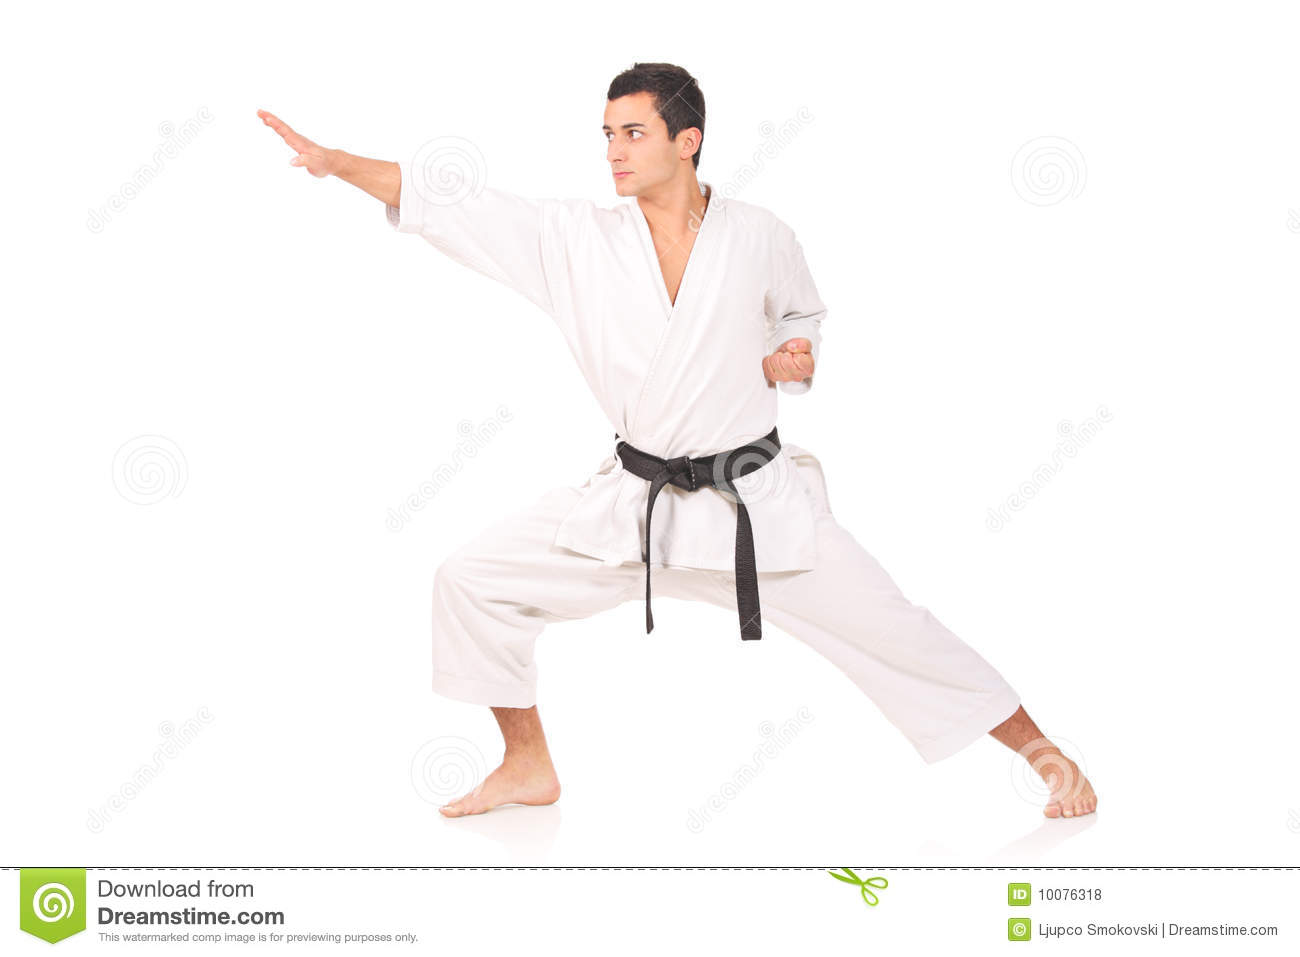 Karate Man Royalty Free Stock Photos Image 10076318